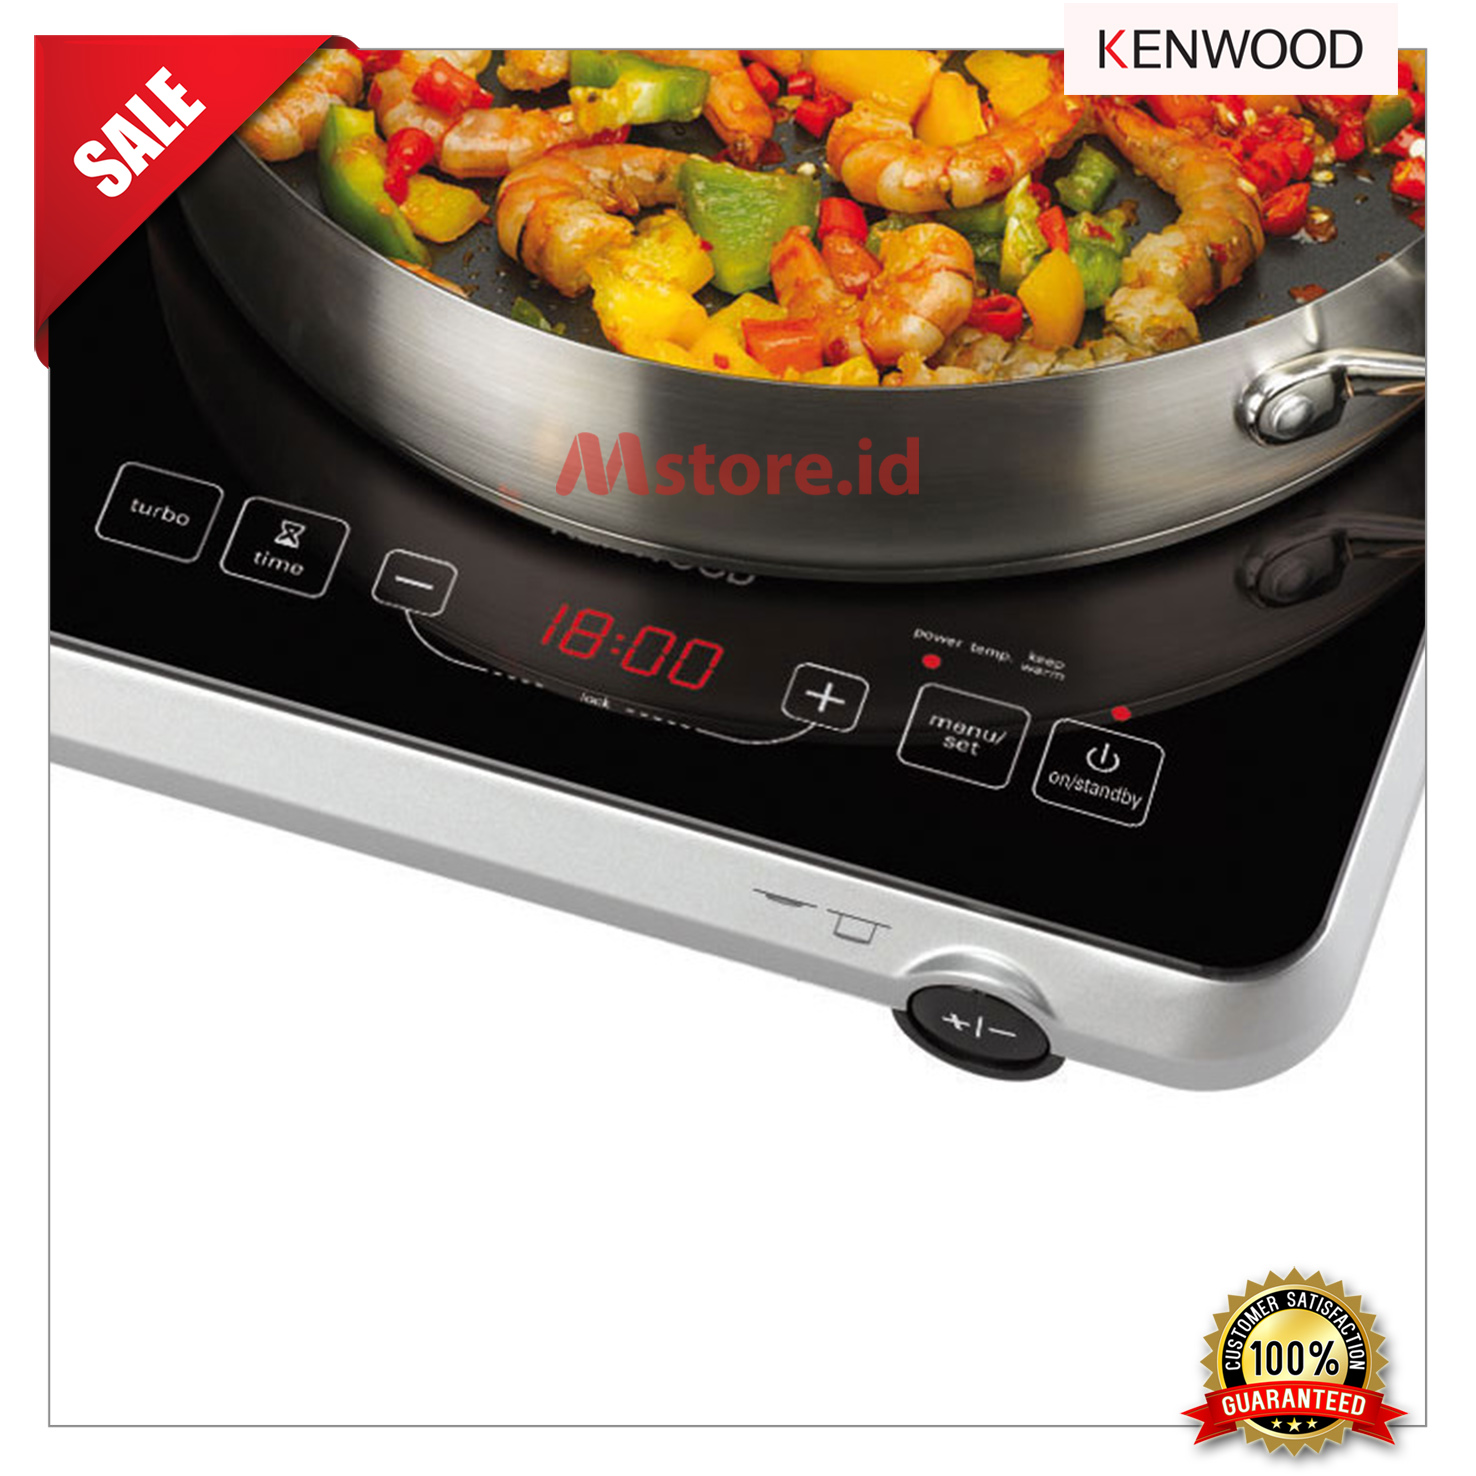 Kenwood Induction Hob IH470_kompor induksi_kenwood_m-store id_multimayaka_3